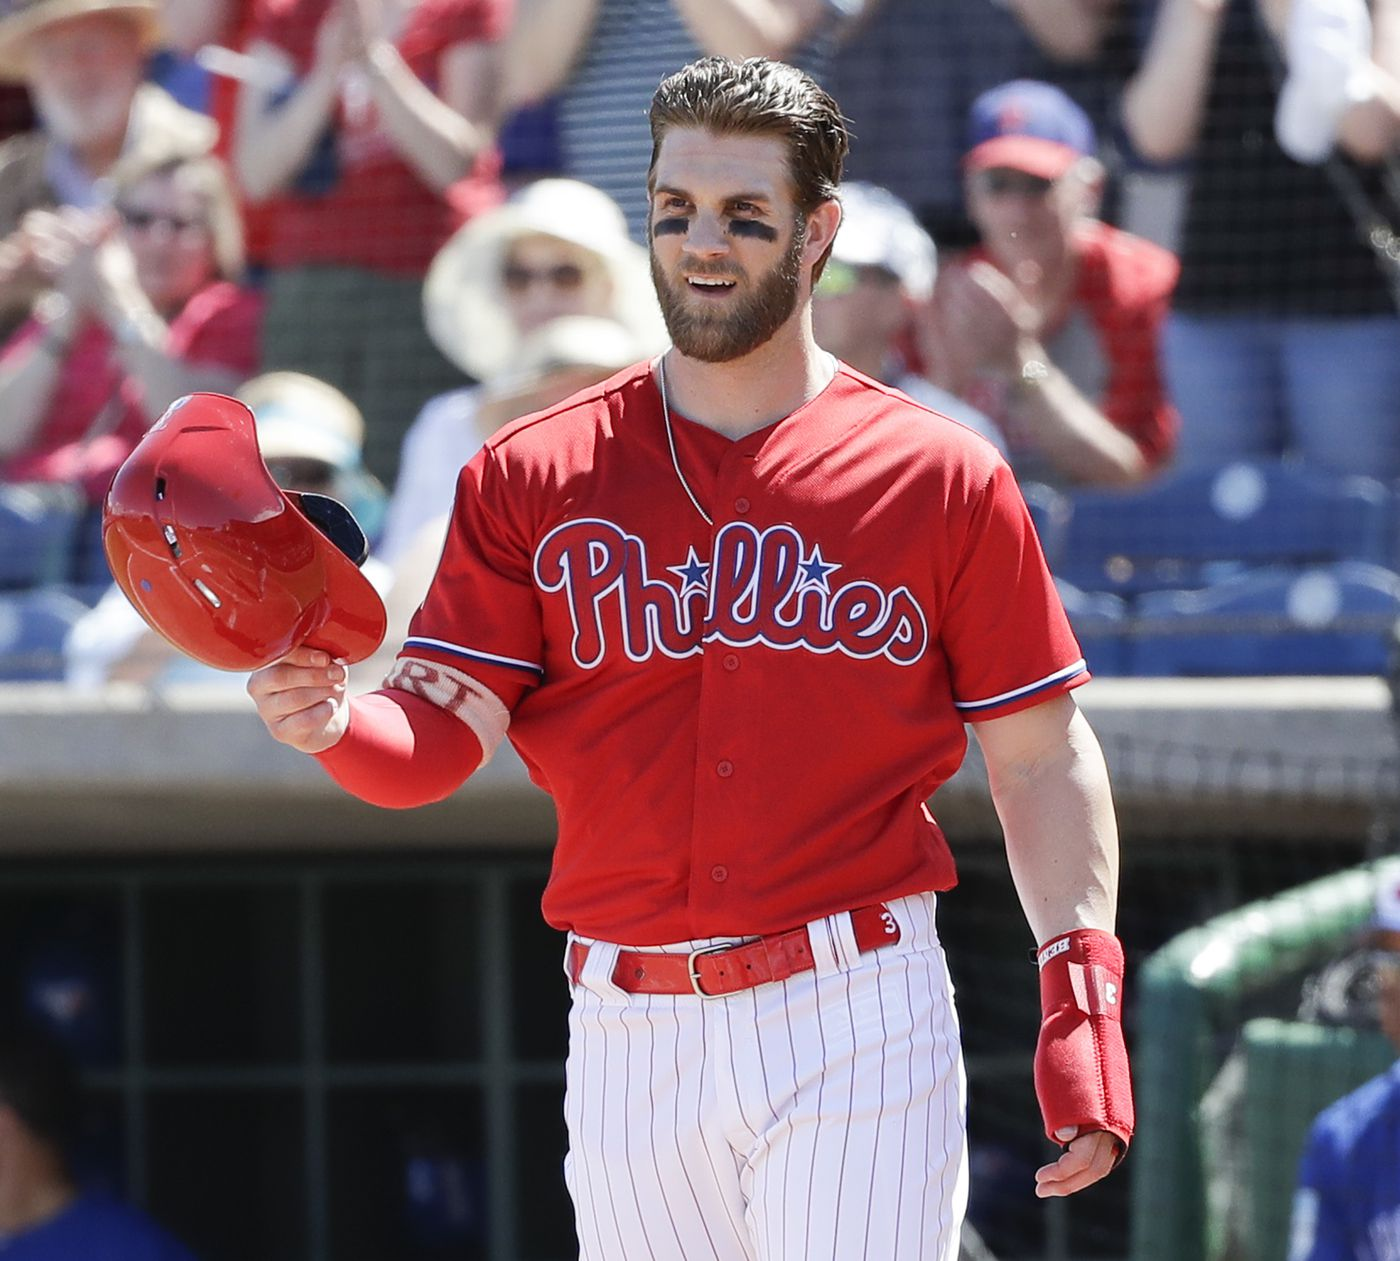 82ed0e5e2ee Bryce Harper salutes Rhys Hoskins after the latter homered against the Blue  Jays in a spring